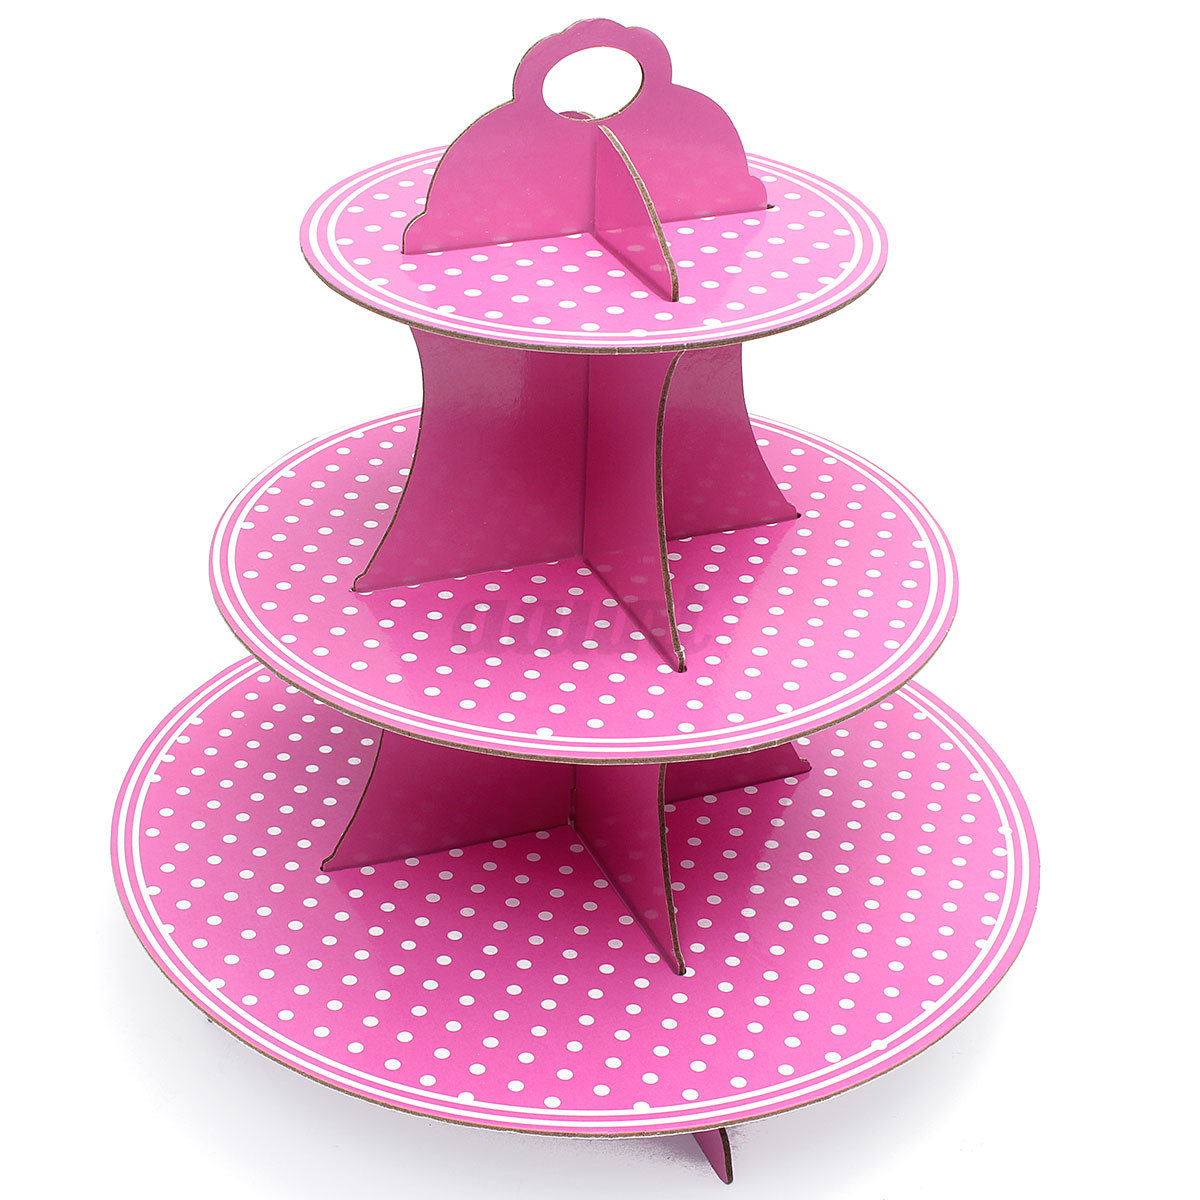 3 Tier Cupcake Stand Kmart 3 Tier Cupcake Cake Stand In